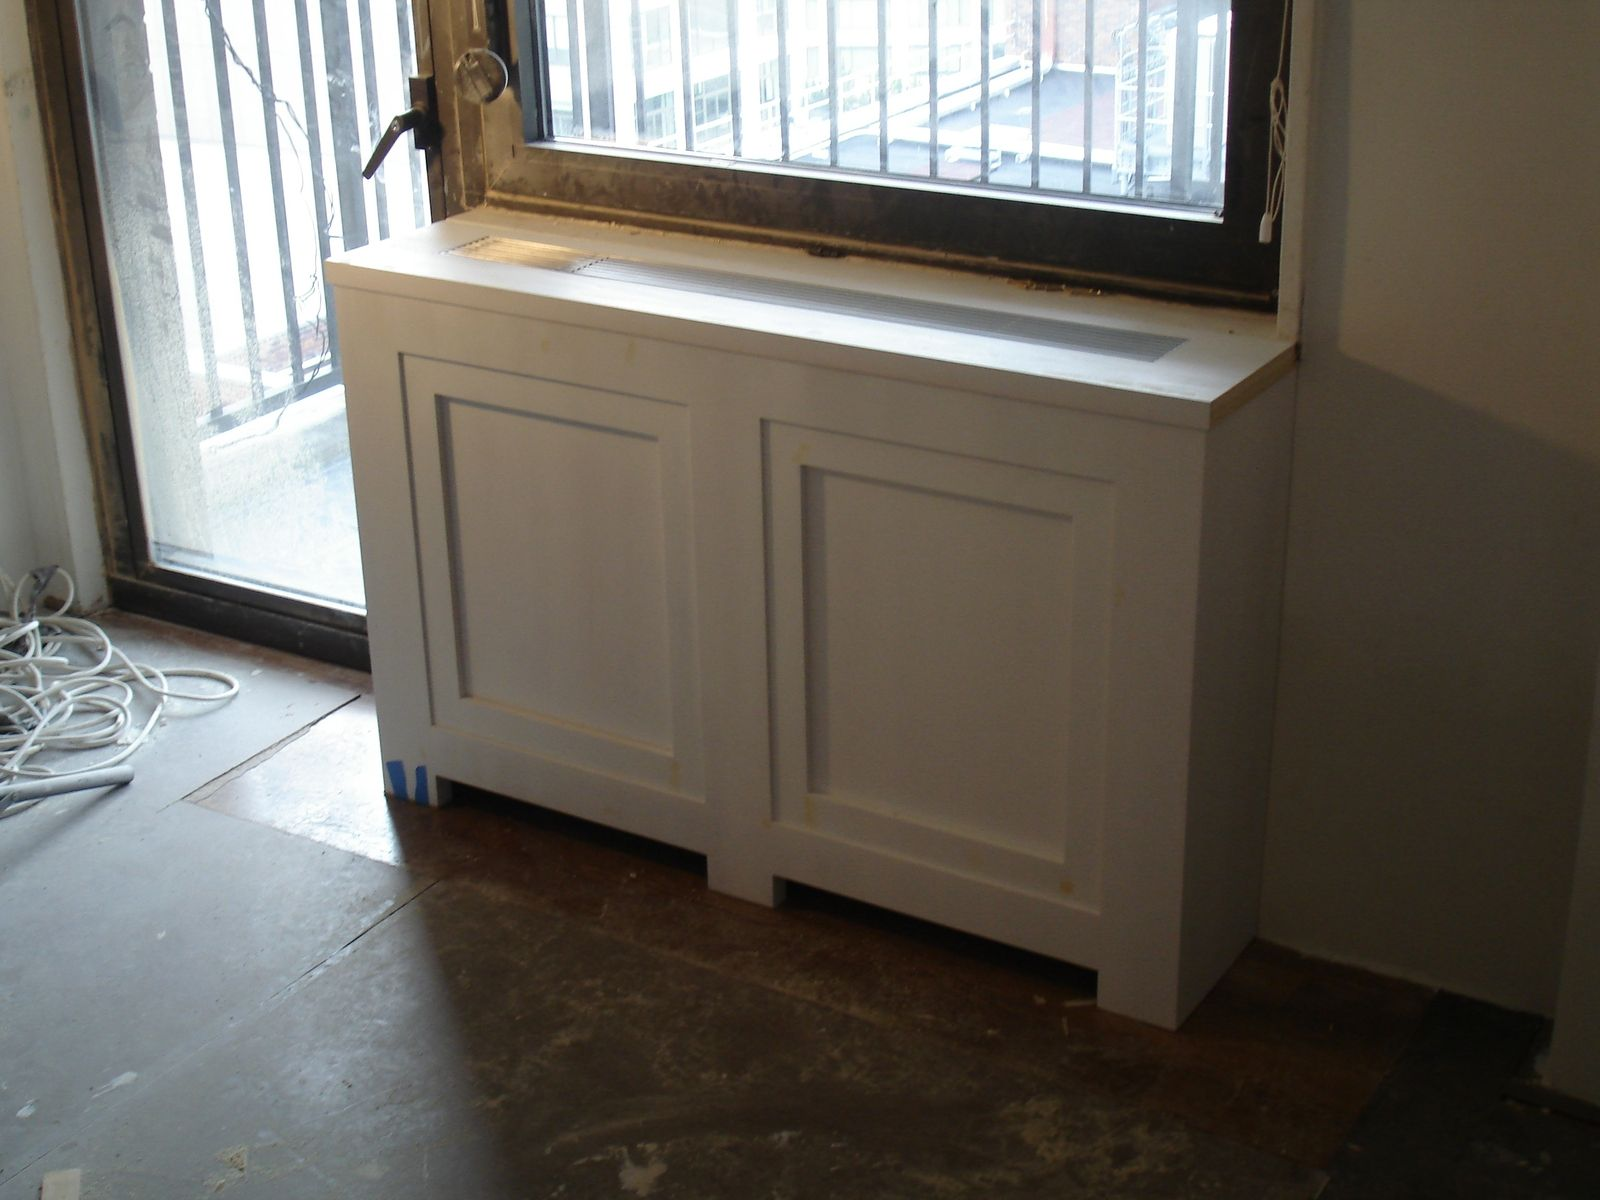 Custom Made Radiator Cover By Boerum Hill Joinery